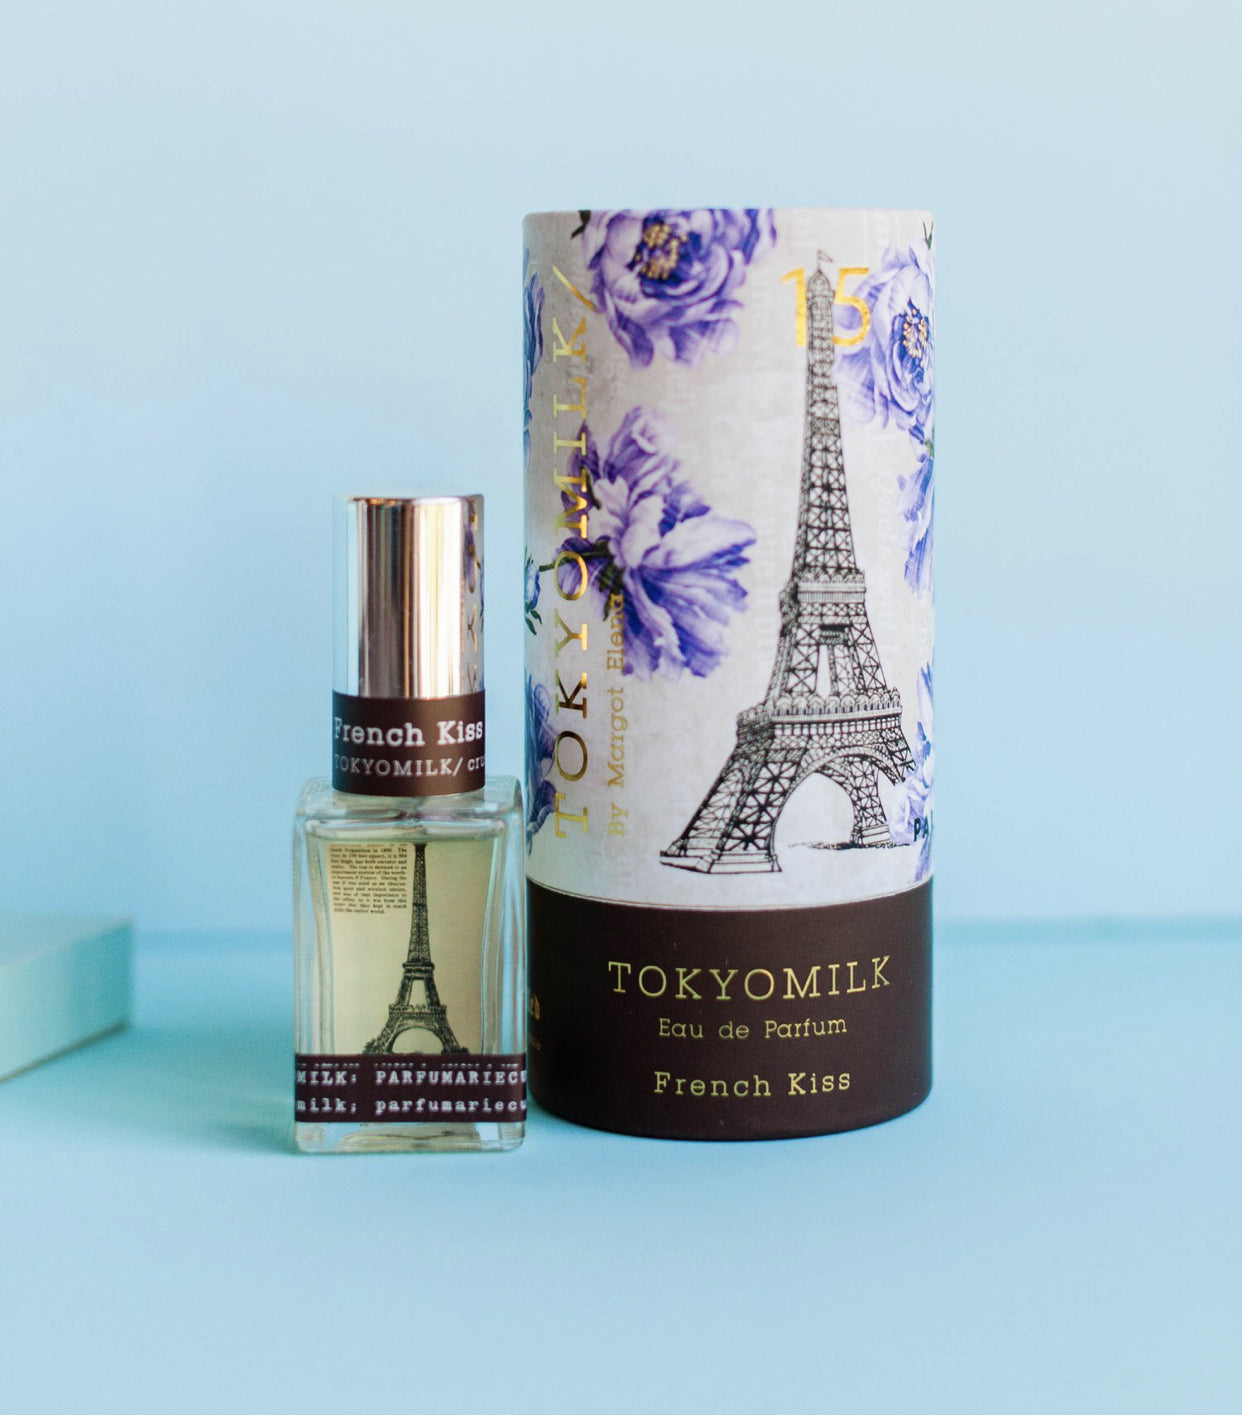 No. 15 French Kiss Parfume